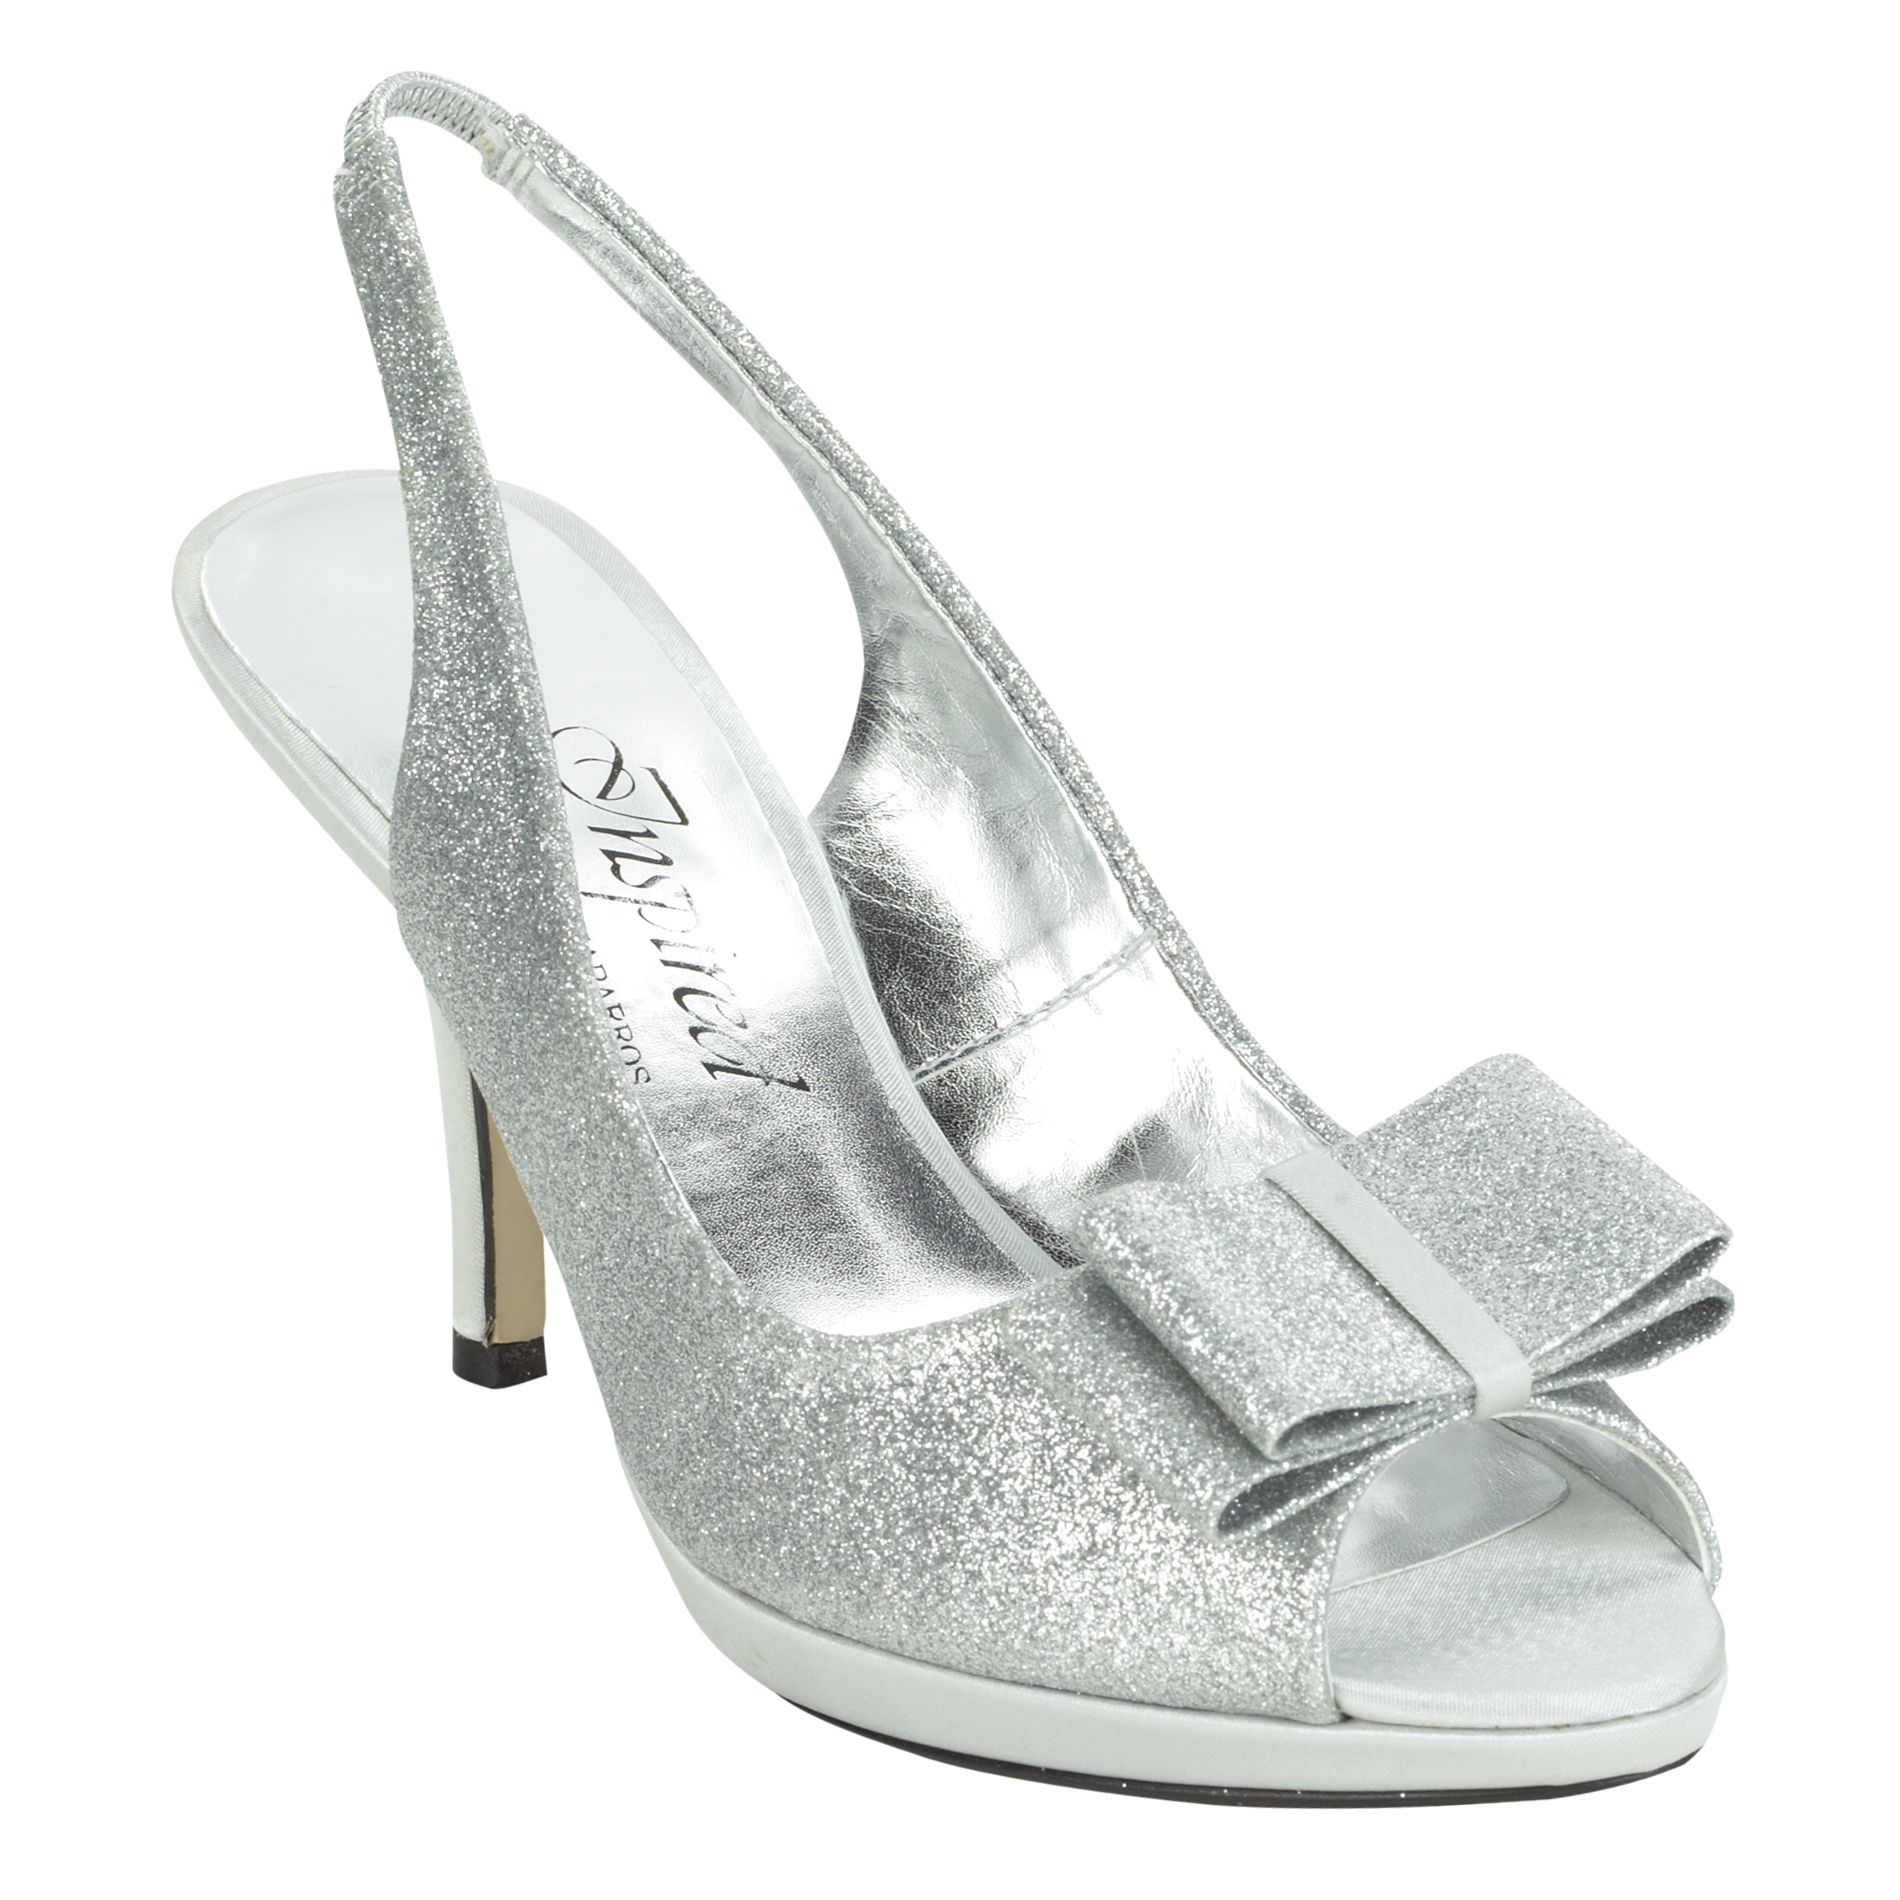 Inspired by Caparros Women's Dress Shoe Mania - Silver 7.5